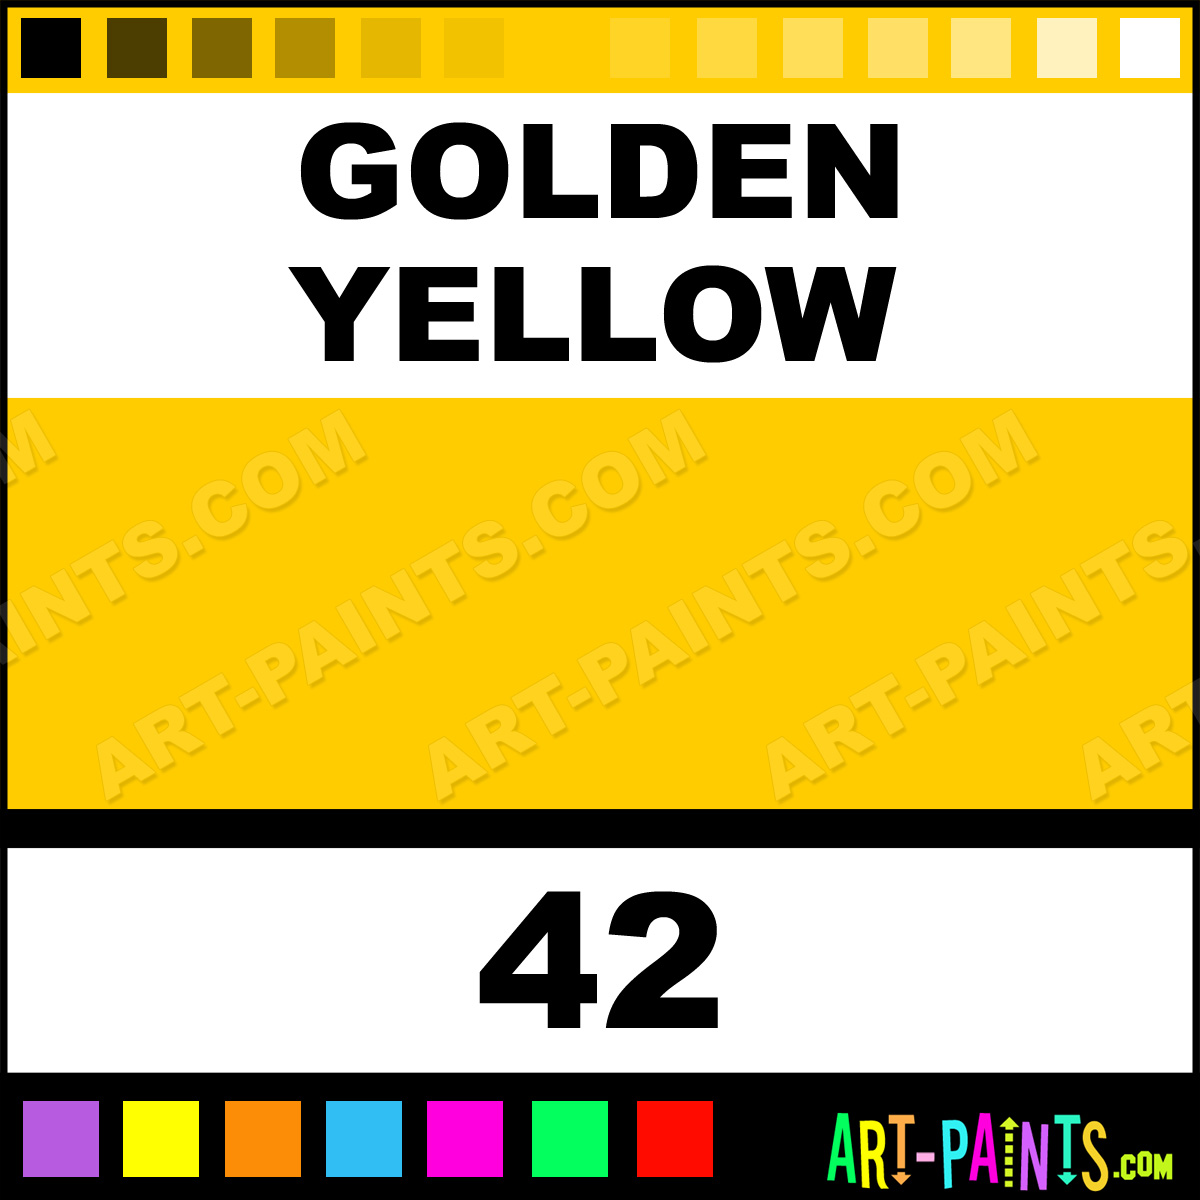 Golden yellow liquid fabric textile paints 42 golden yellow golden yellow paint 42 by rit dye nvjuhfo Choice Image